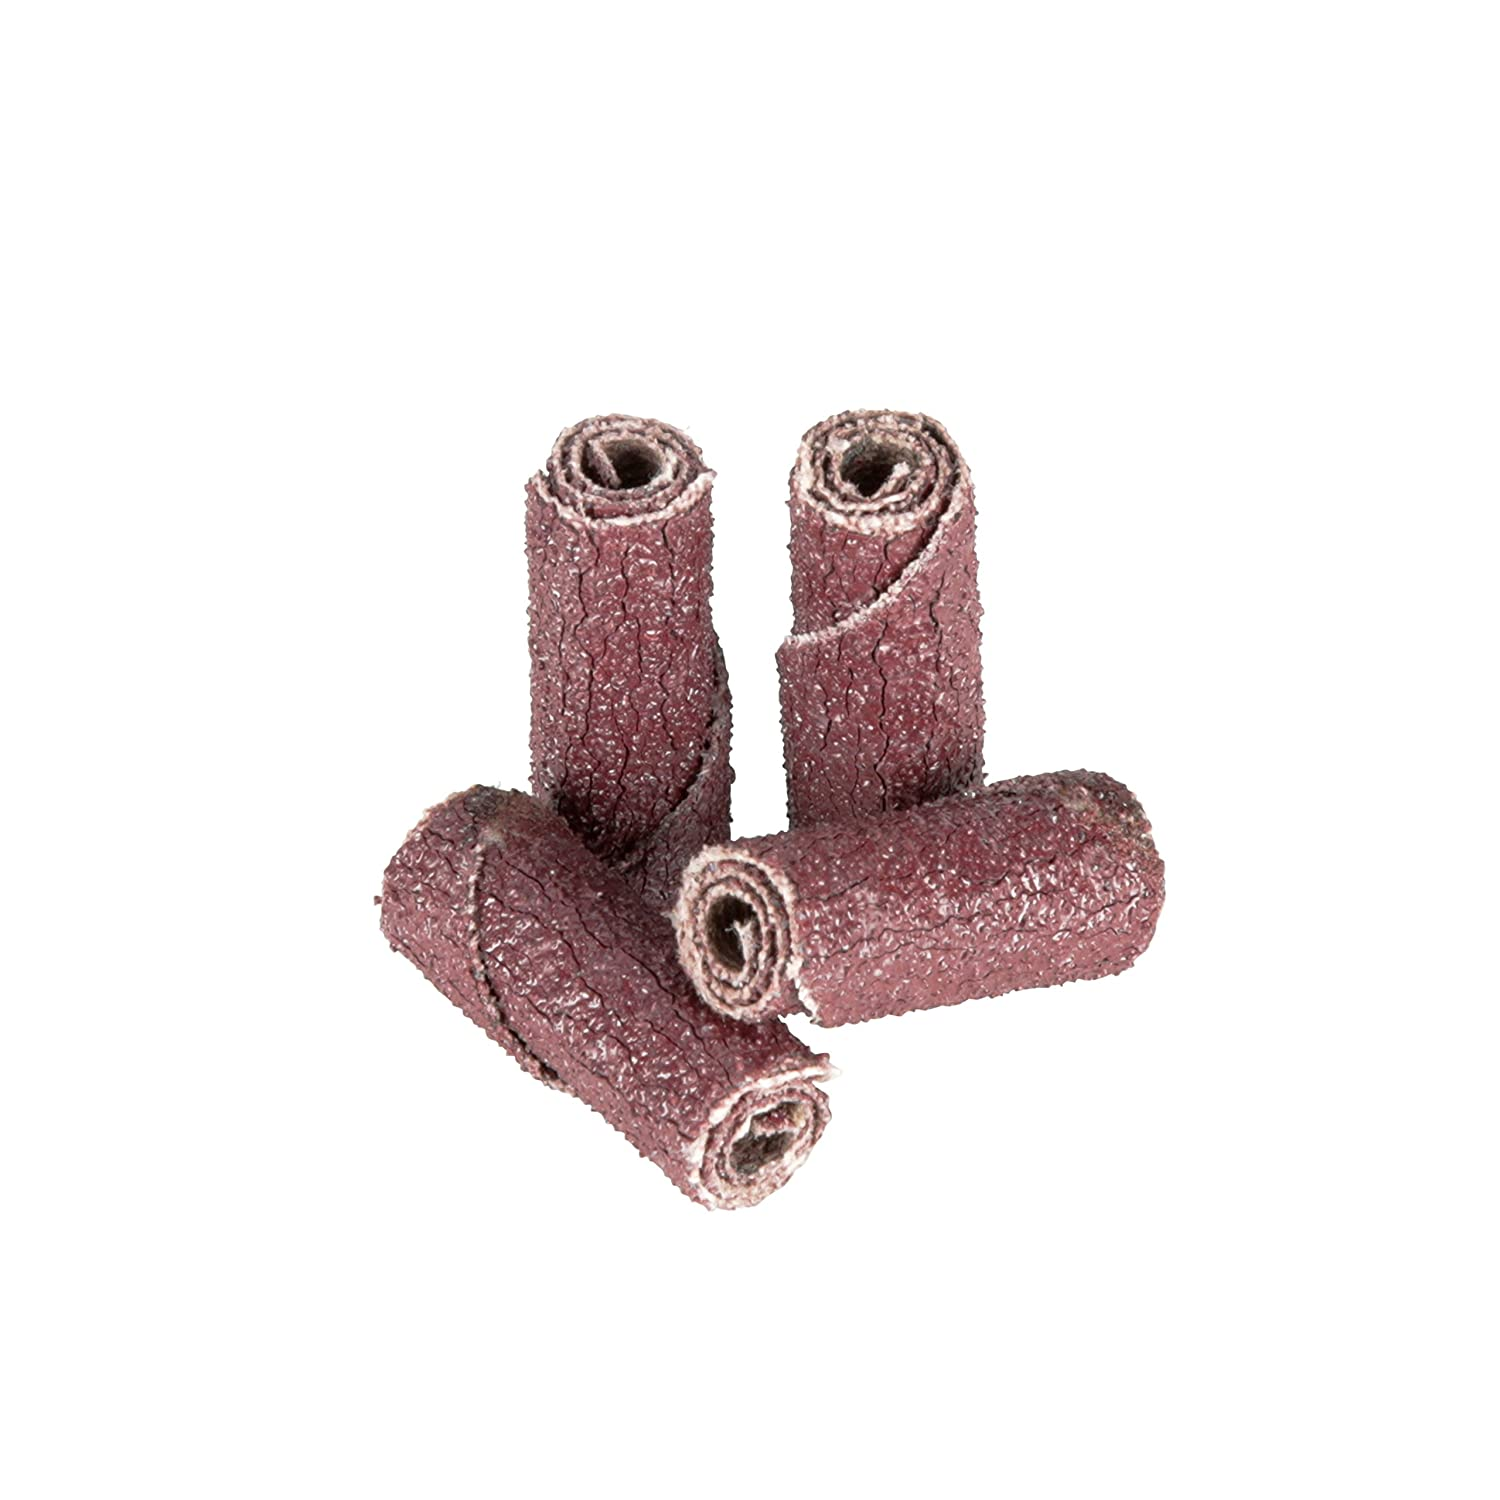 You are purchasing the Min order quantity which is 100 ROLLS 1//2 in x 1-1//2 in x 1//8 in 36 X-weight Cartridge Roll 341D 3M 100 per case 341D